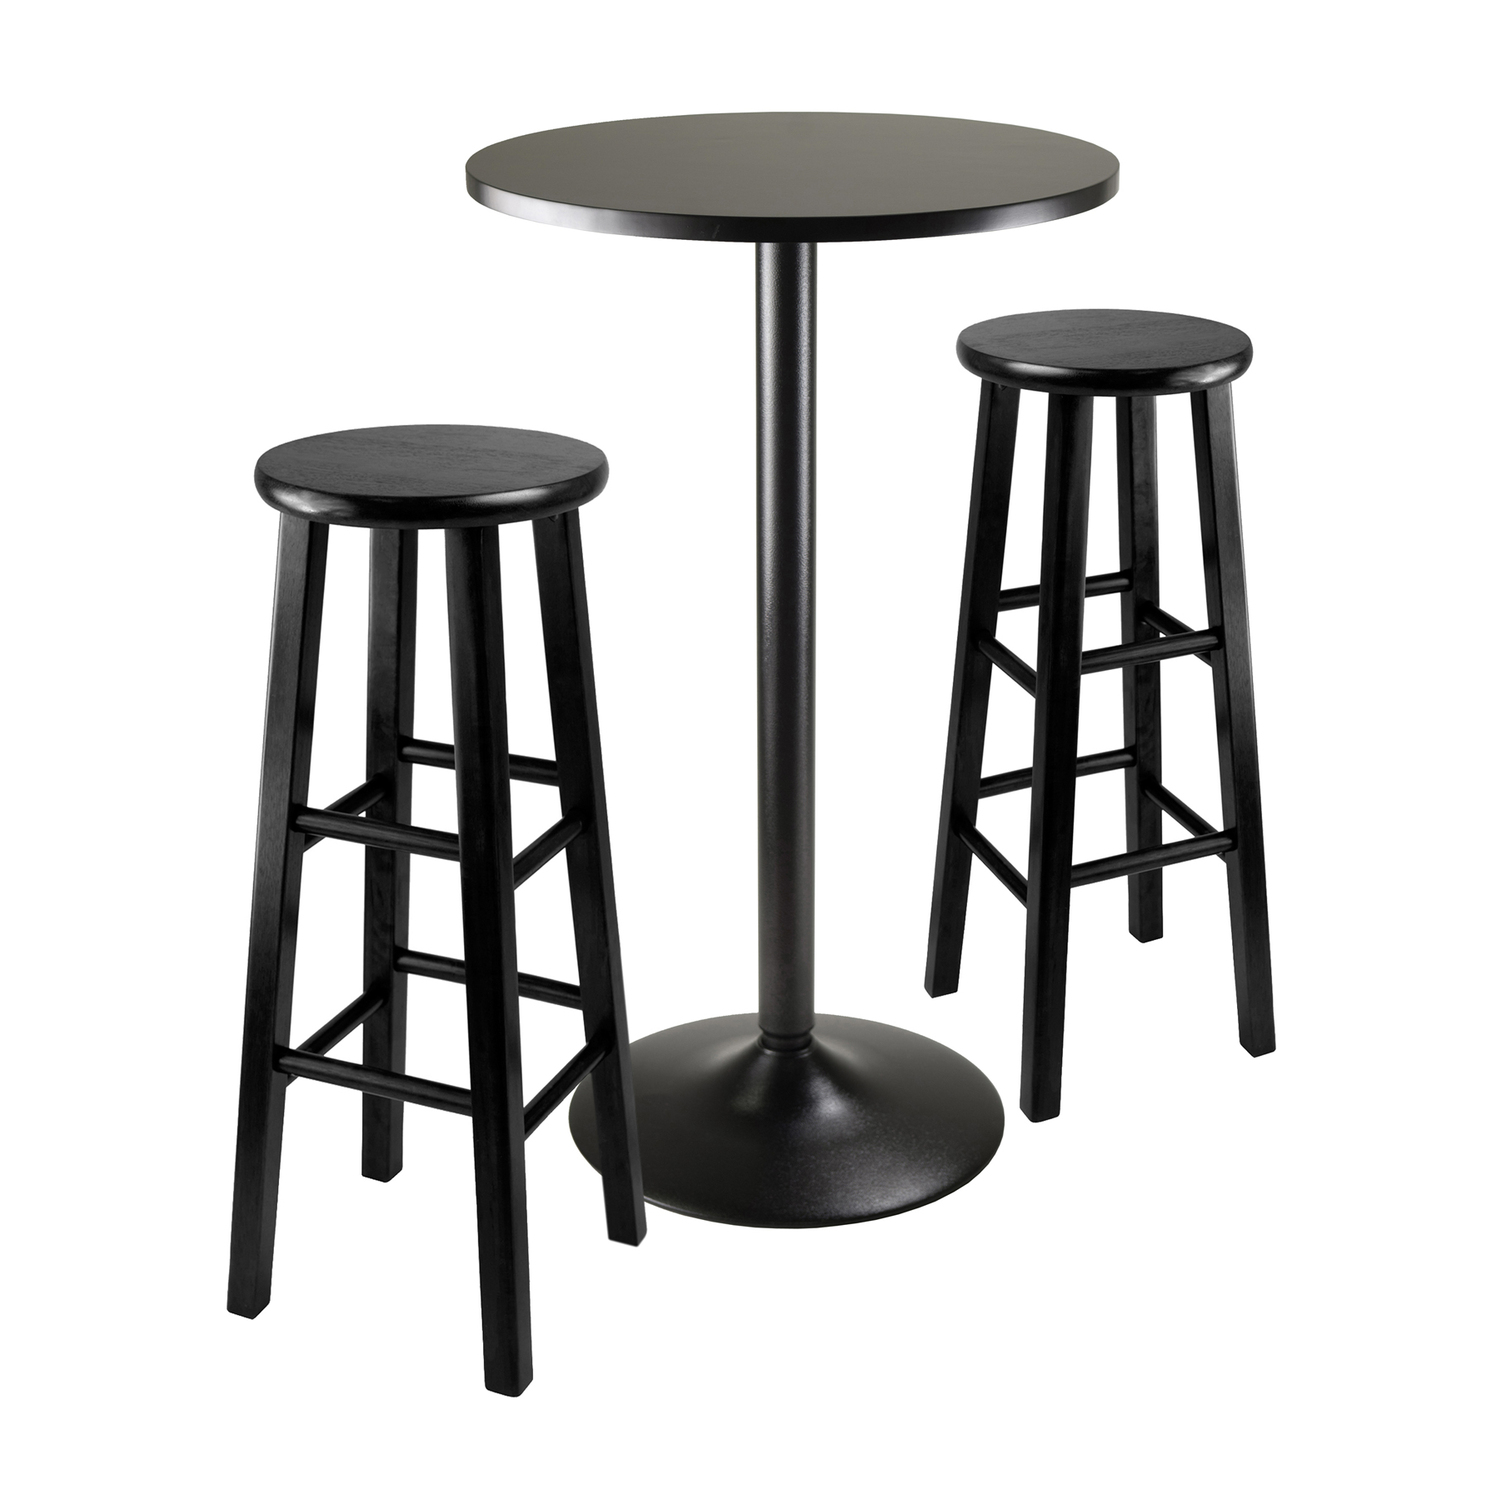 Obsidian 3 Piece Round Black Pub Table Set - [20331]  sc 1 st  OJ Commerce & Obsidian 3 Piece Round Black Pub Table Set - $290.33 | OJCommerce